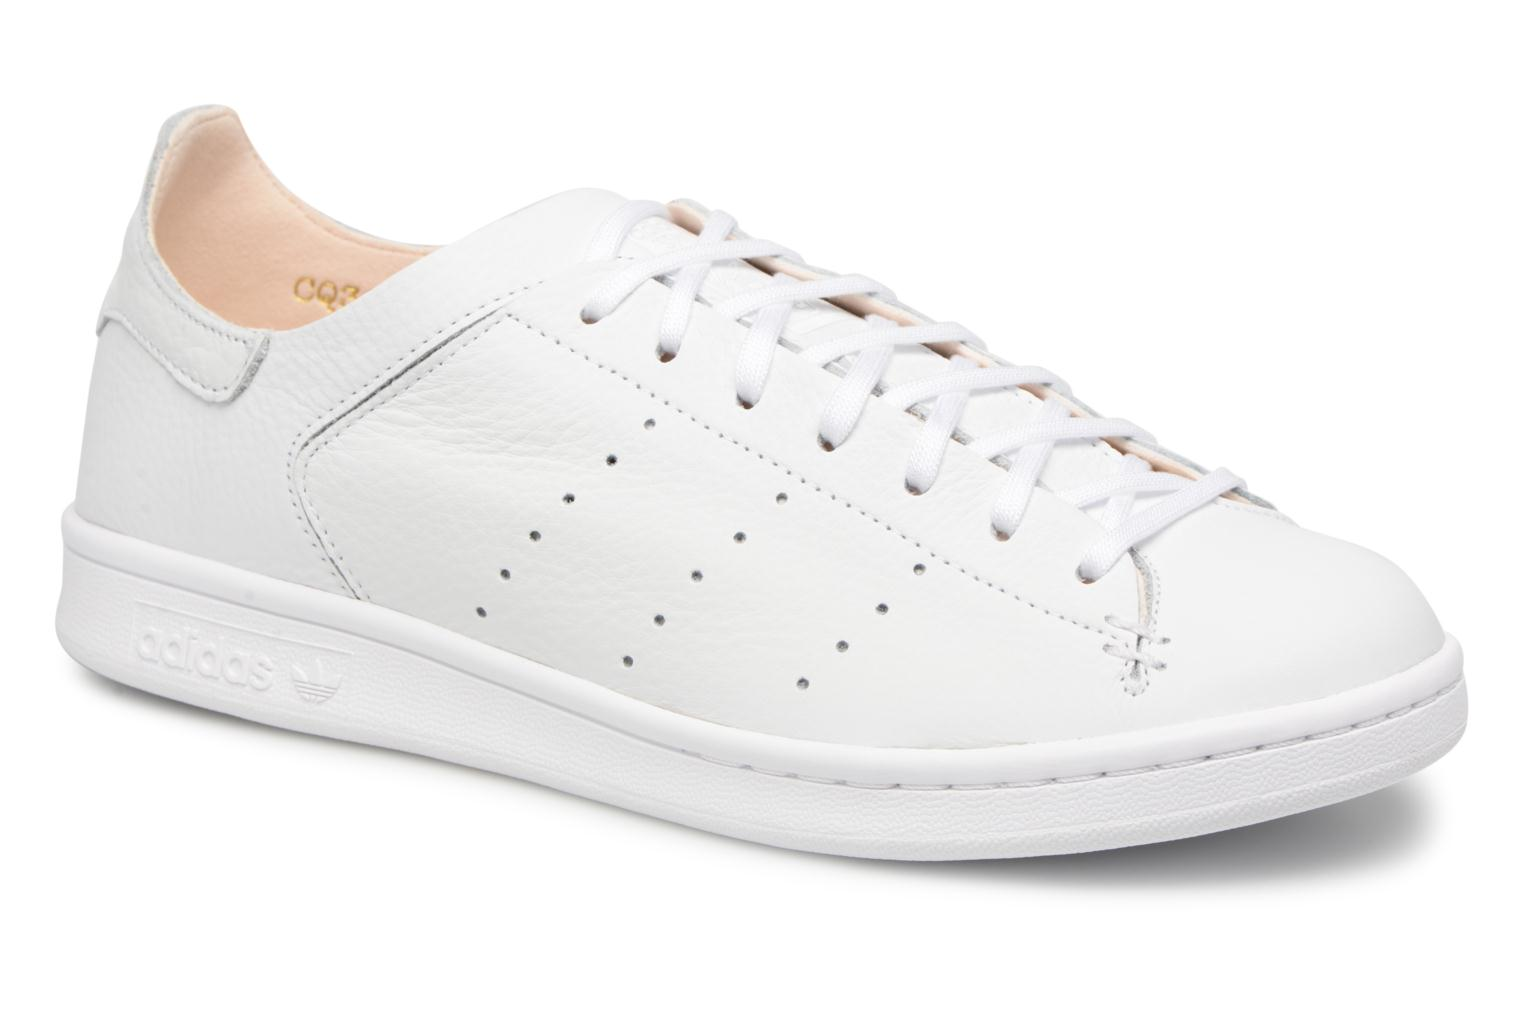 adidas originals stan smith lea strumpf (weißen) trainer chez sarenza